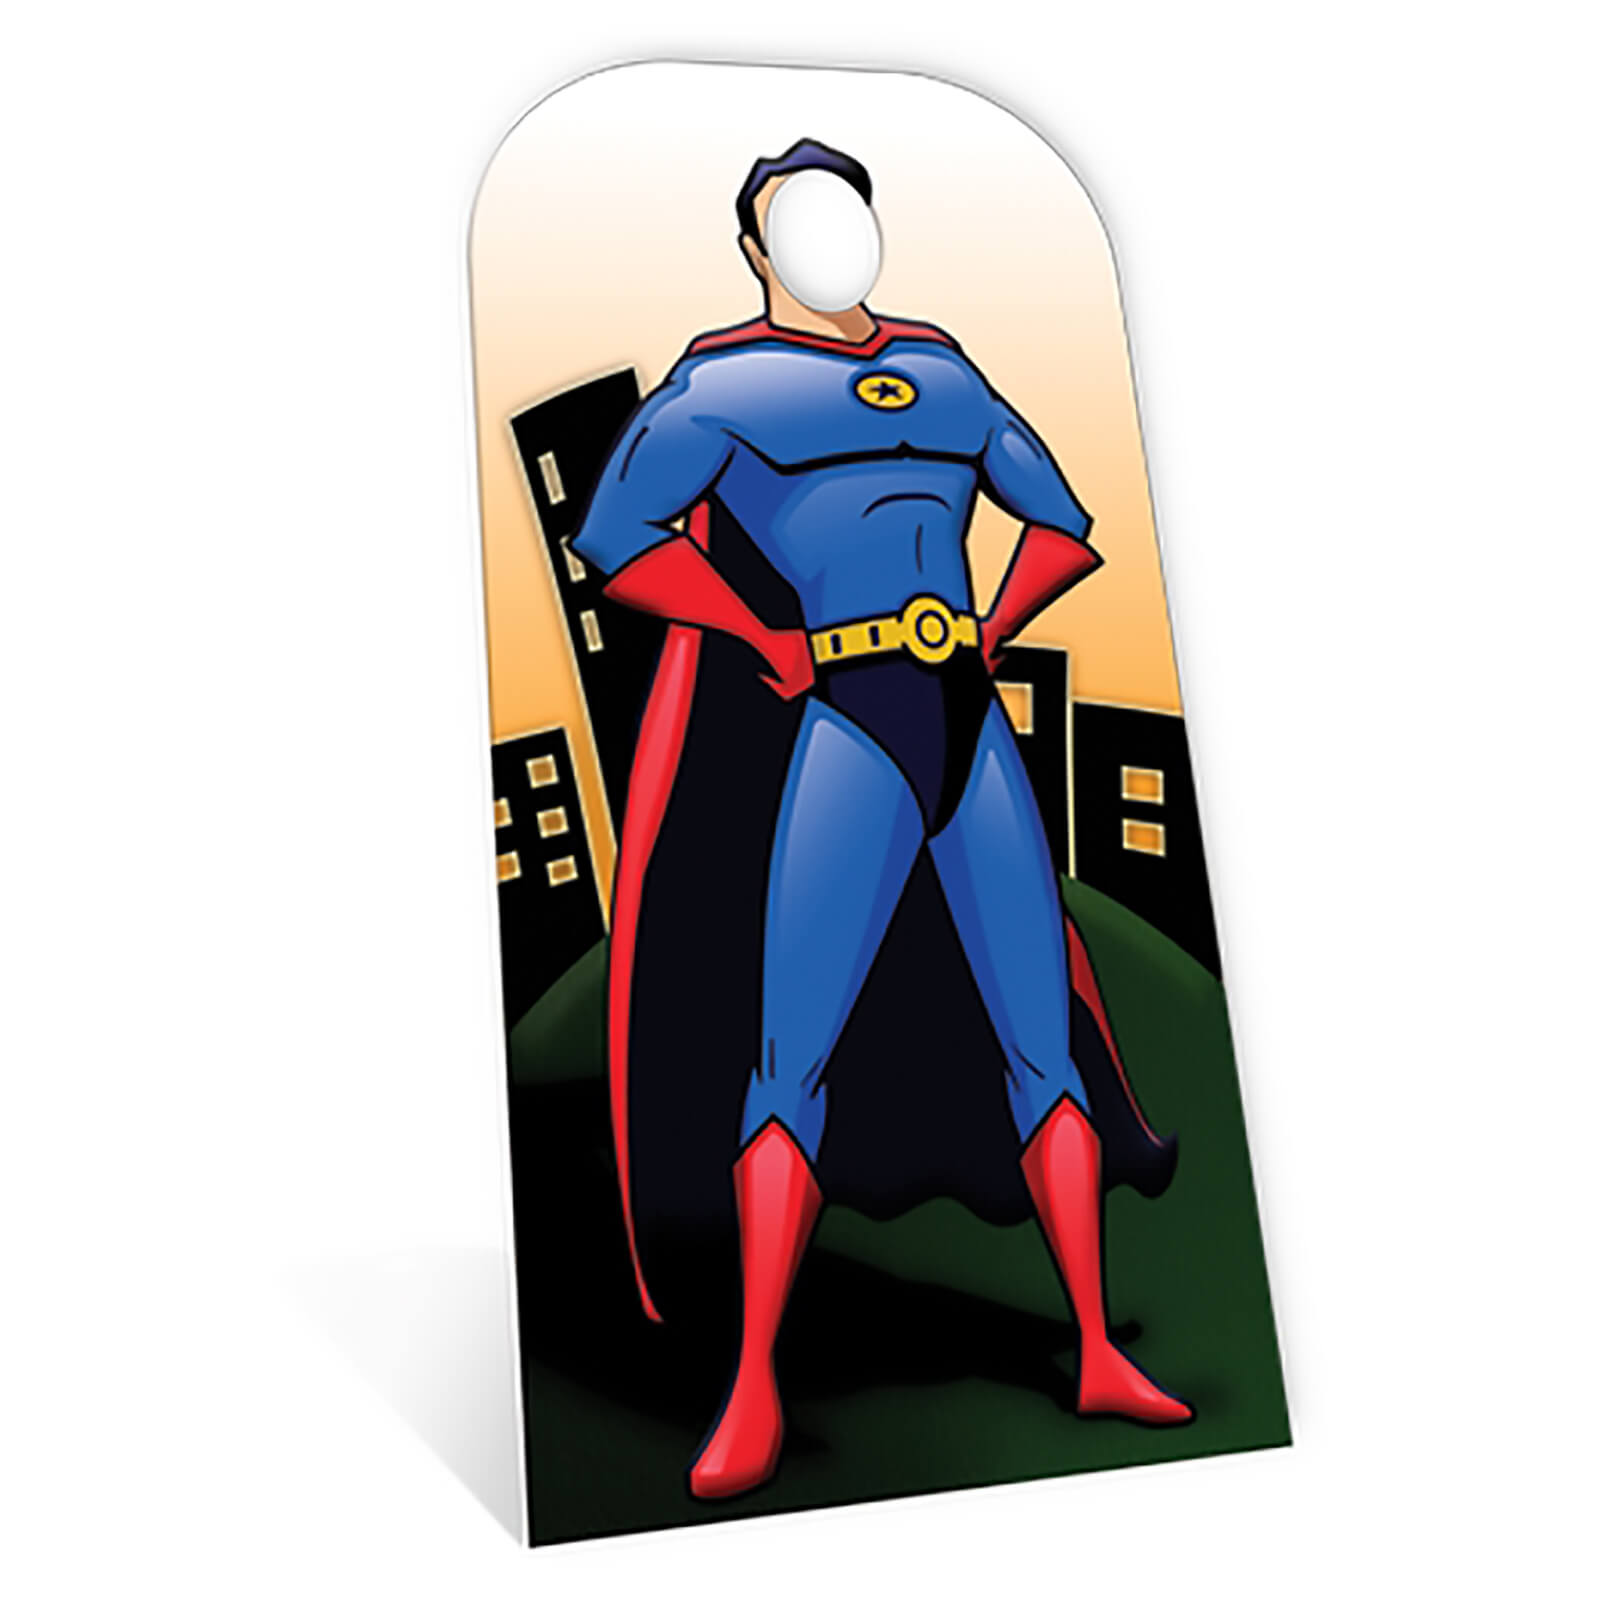 Image of Superhero Stand- In Cardboard Cut Out